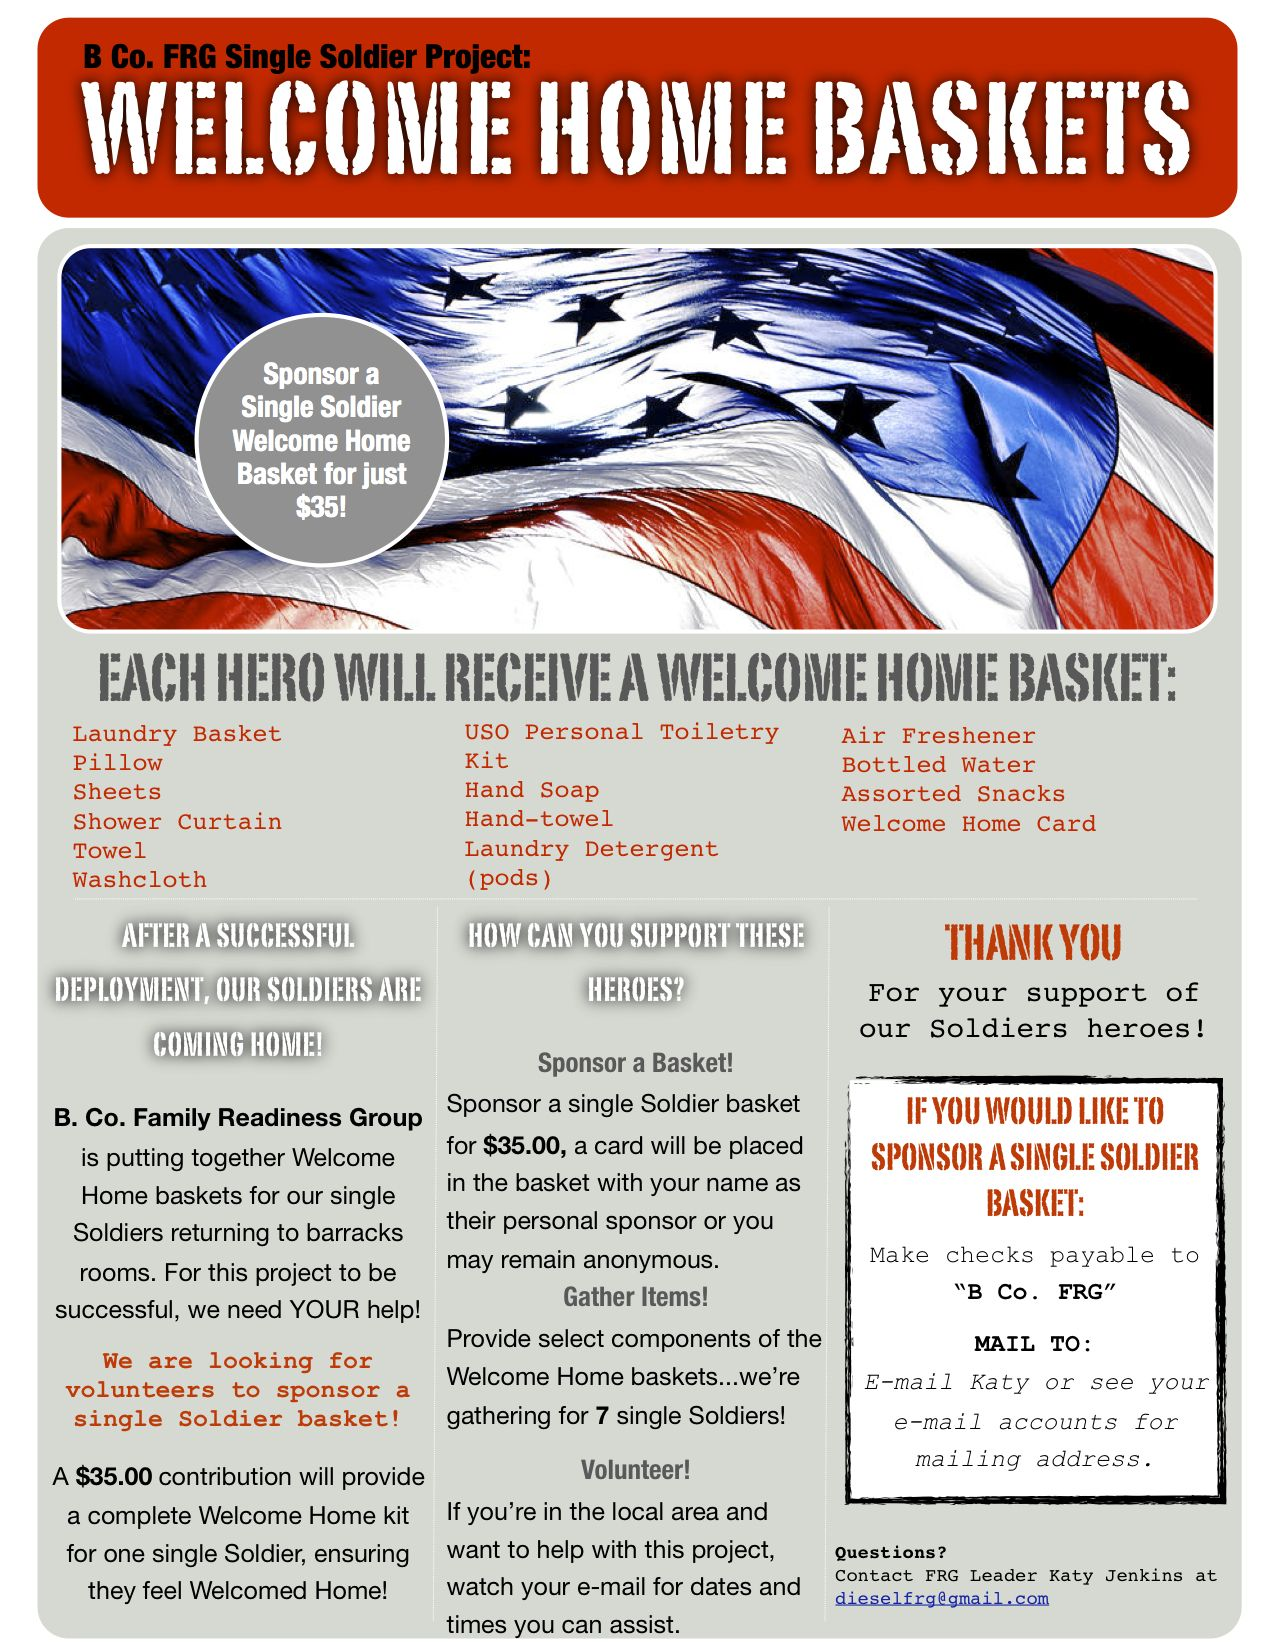 Single Soldier Welcome Home Baskets for Barracks | B Co. FRG ...